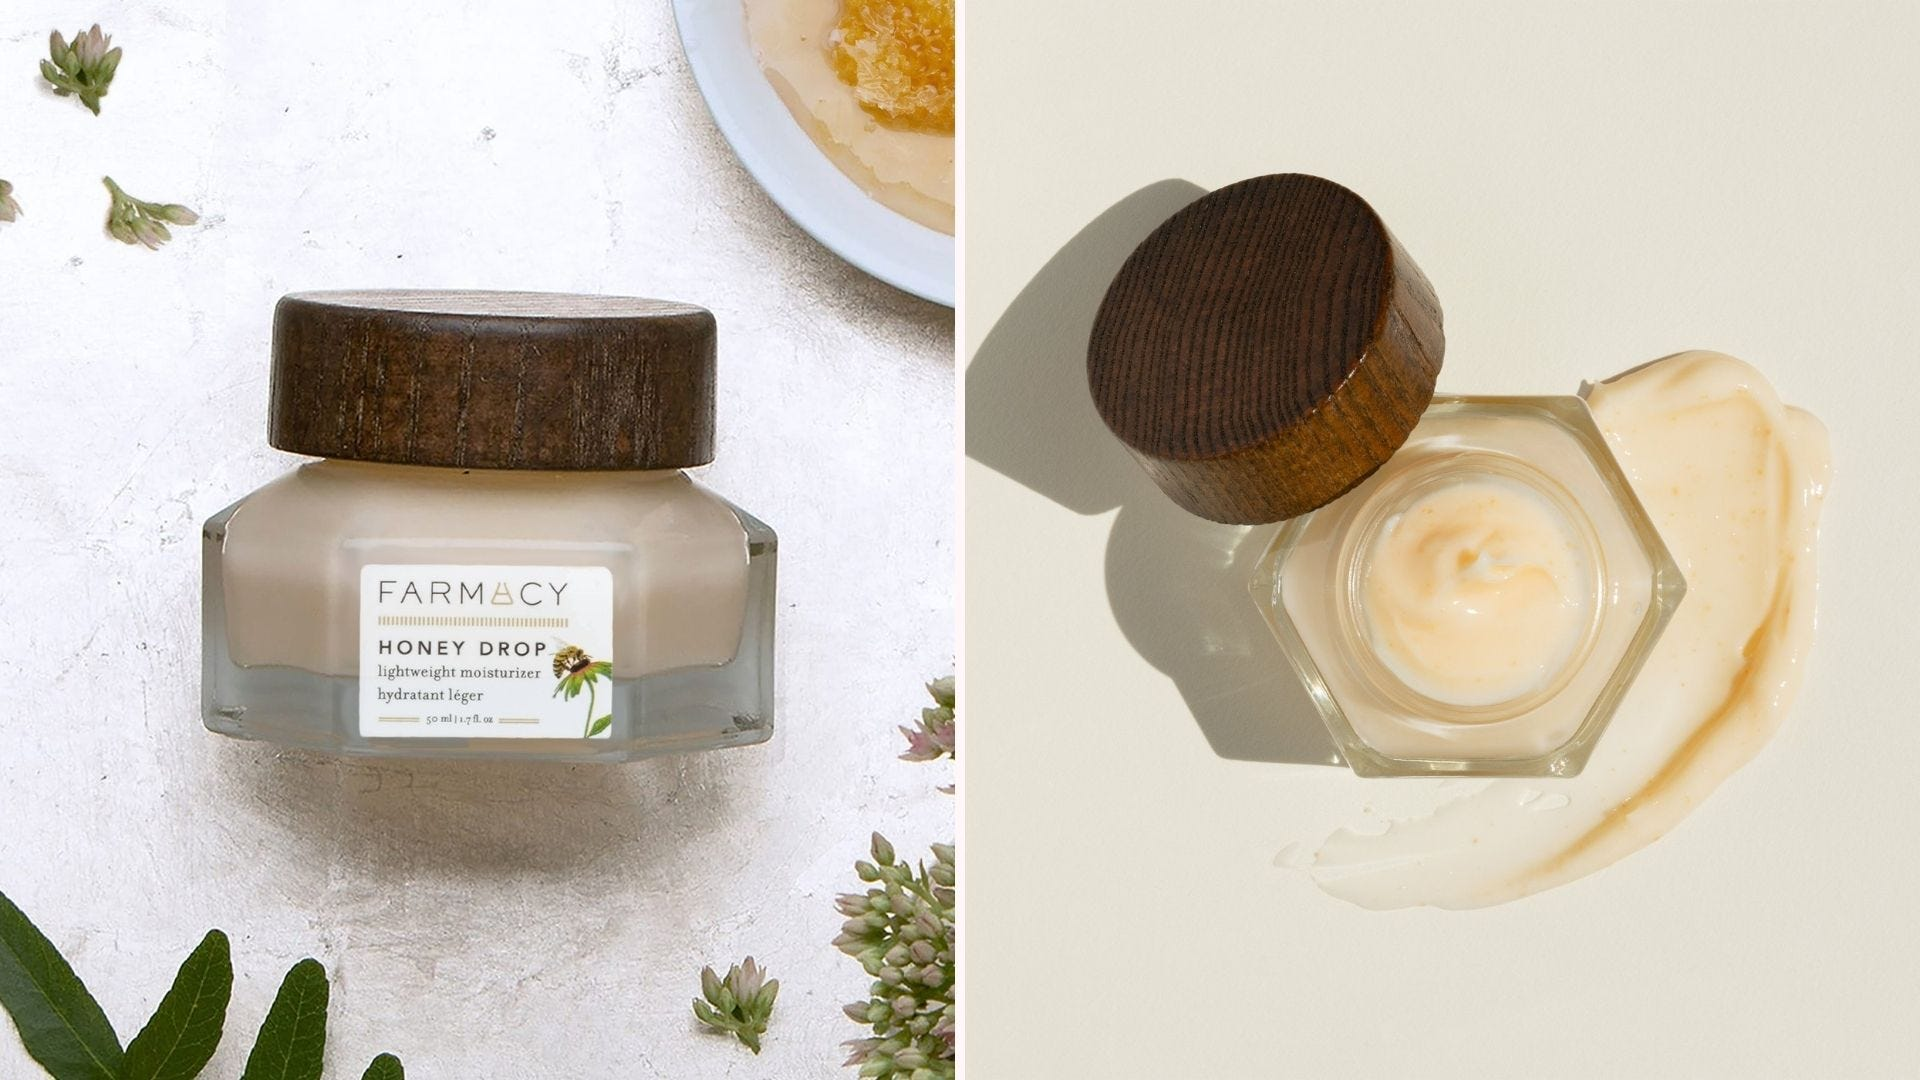 Side view of a glass jar of moisturizer with a wood lid; same jar, open and viewed from above with yellow cream inside